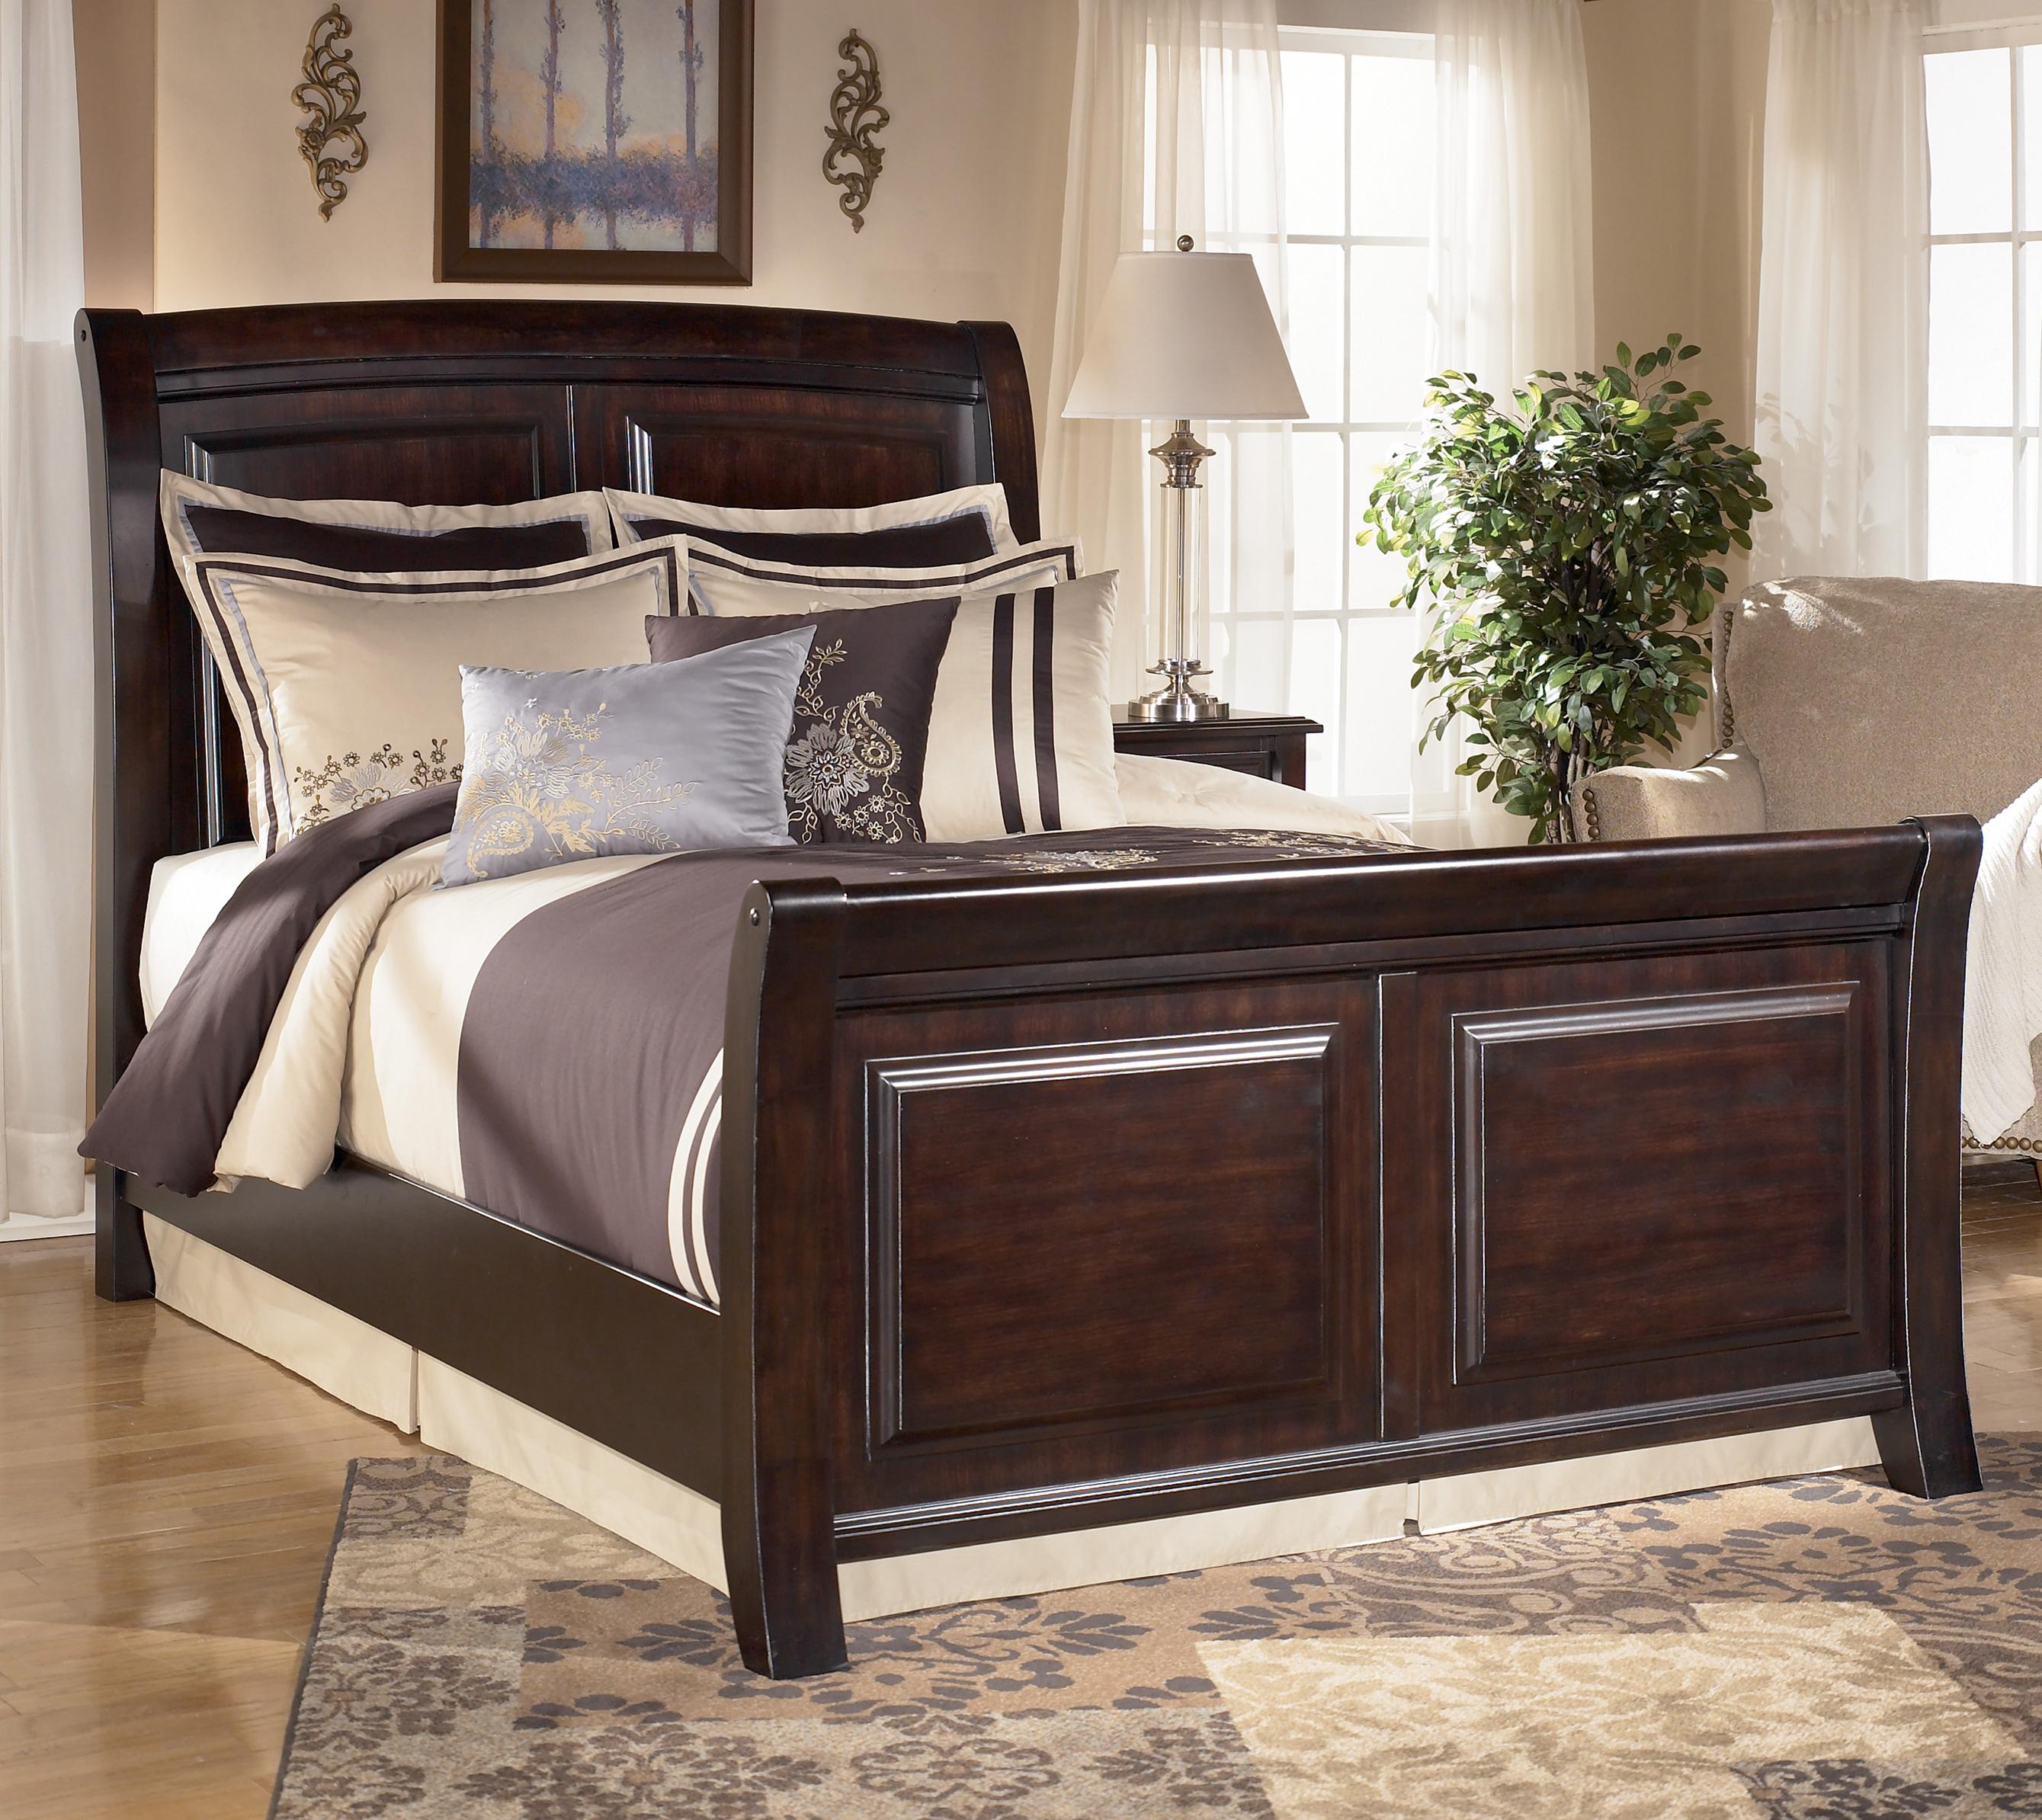 Signature Design by Ashley Ridgley Queen Sleigh Bed - Item Number: B520-74+77+98